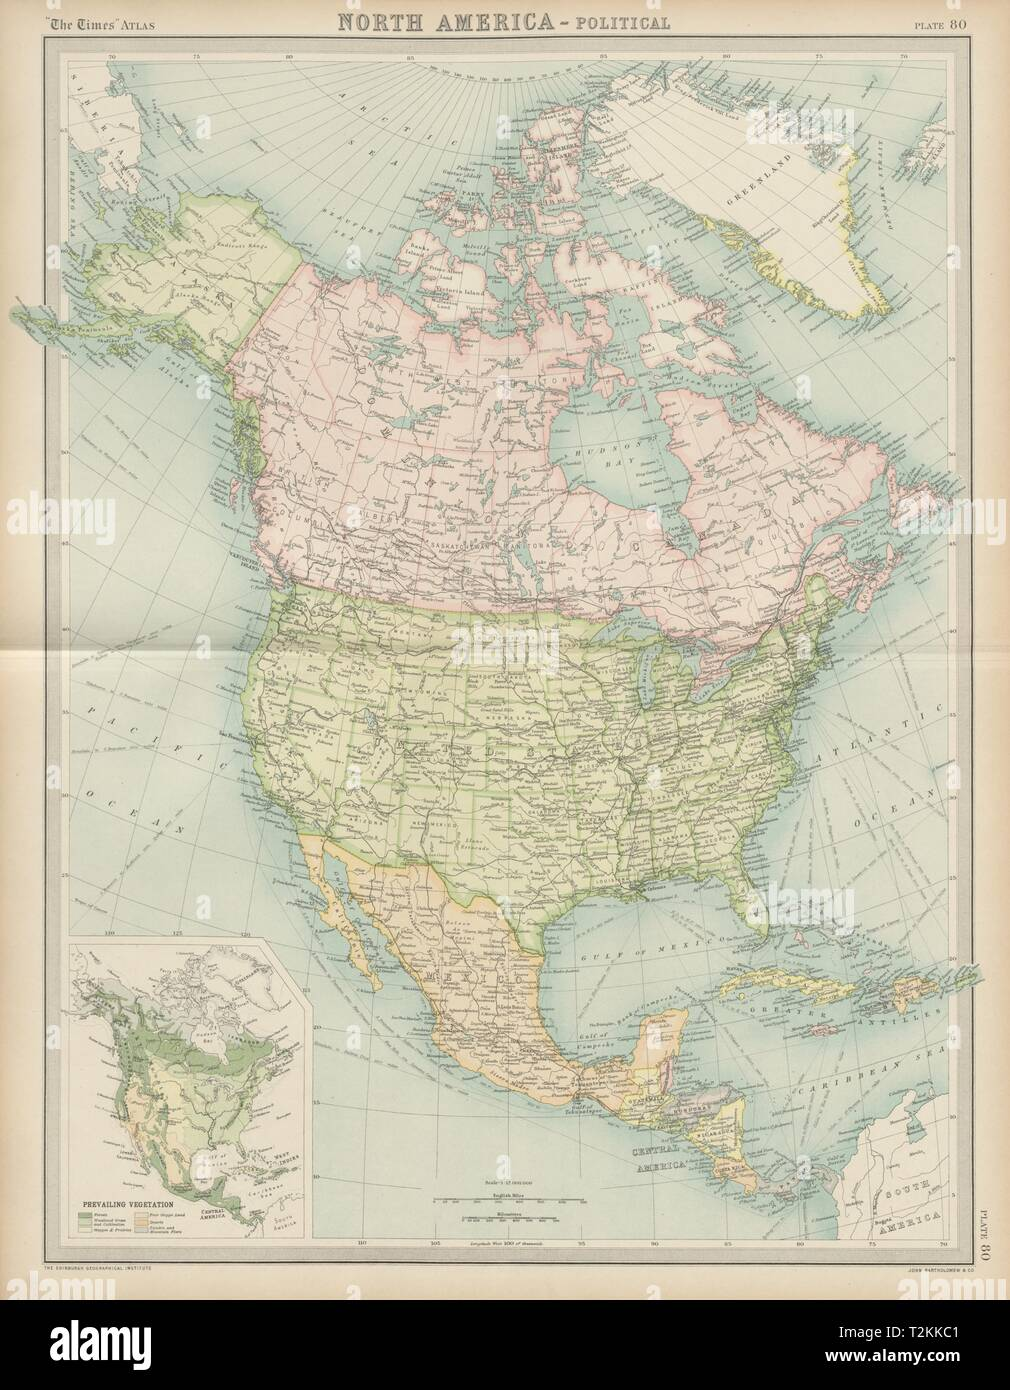 Political Map Of United States Canada And Greenland North America   Political. United States Canada Mexico Greenland